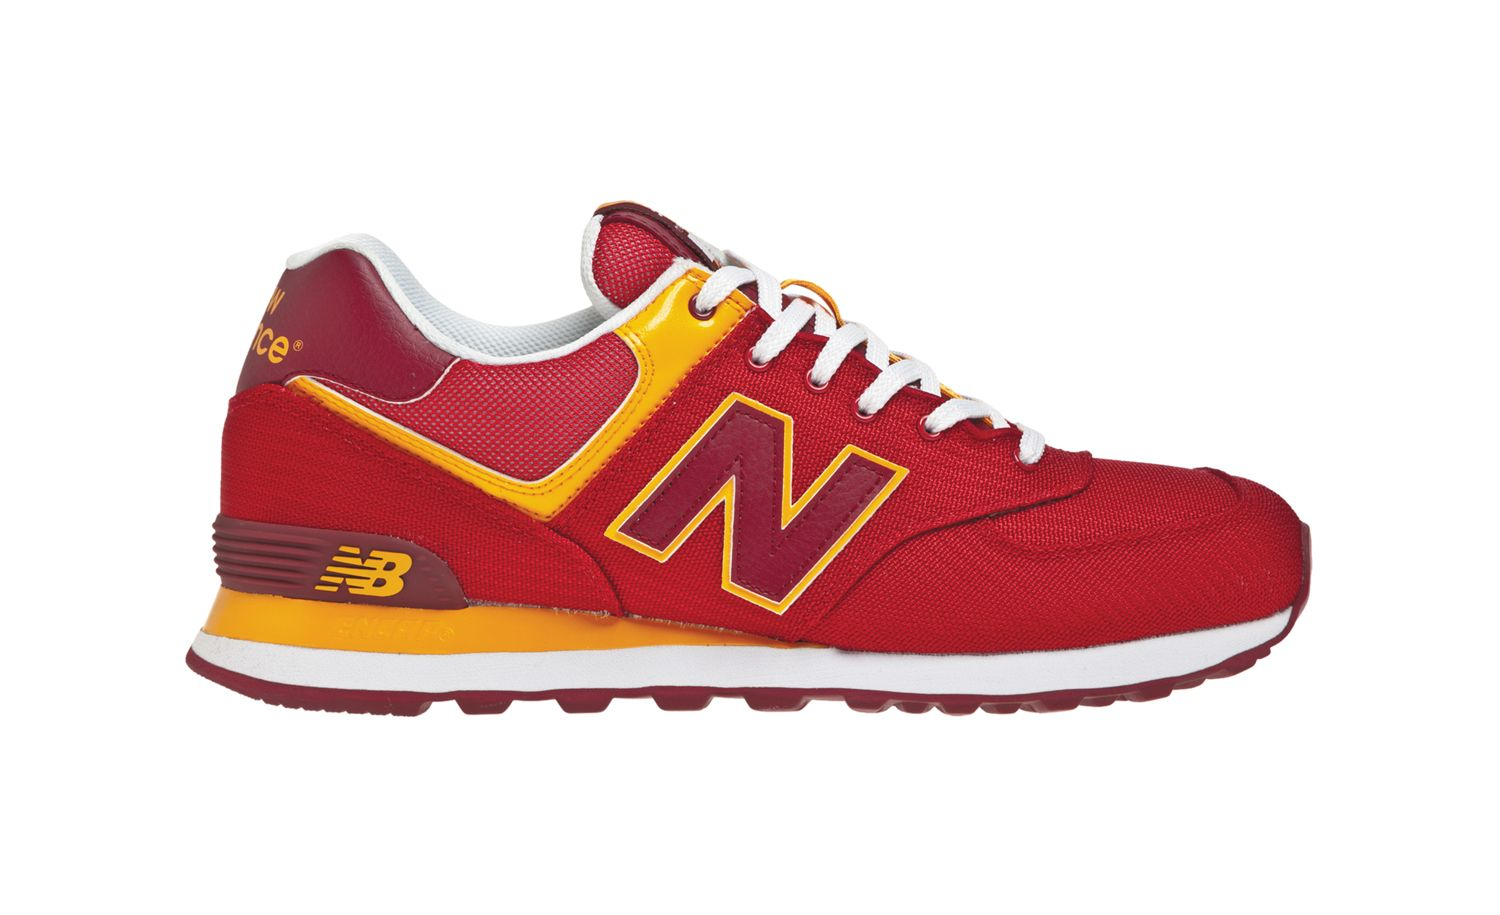 New Balance 574 Passport